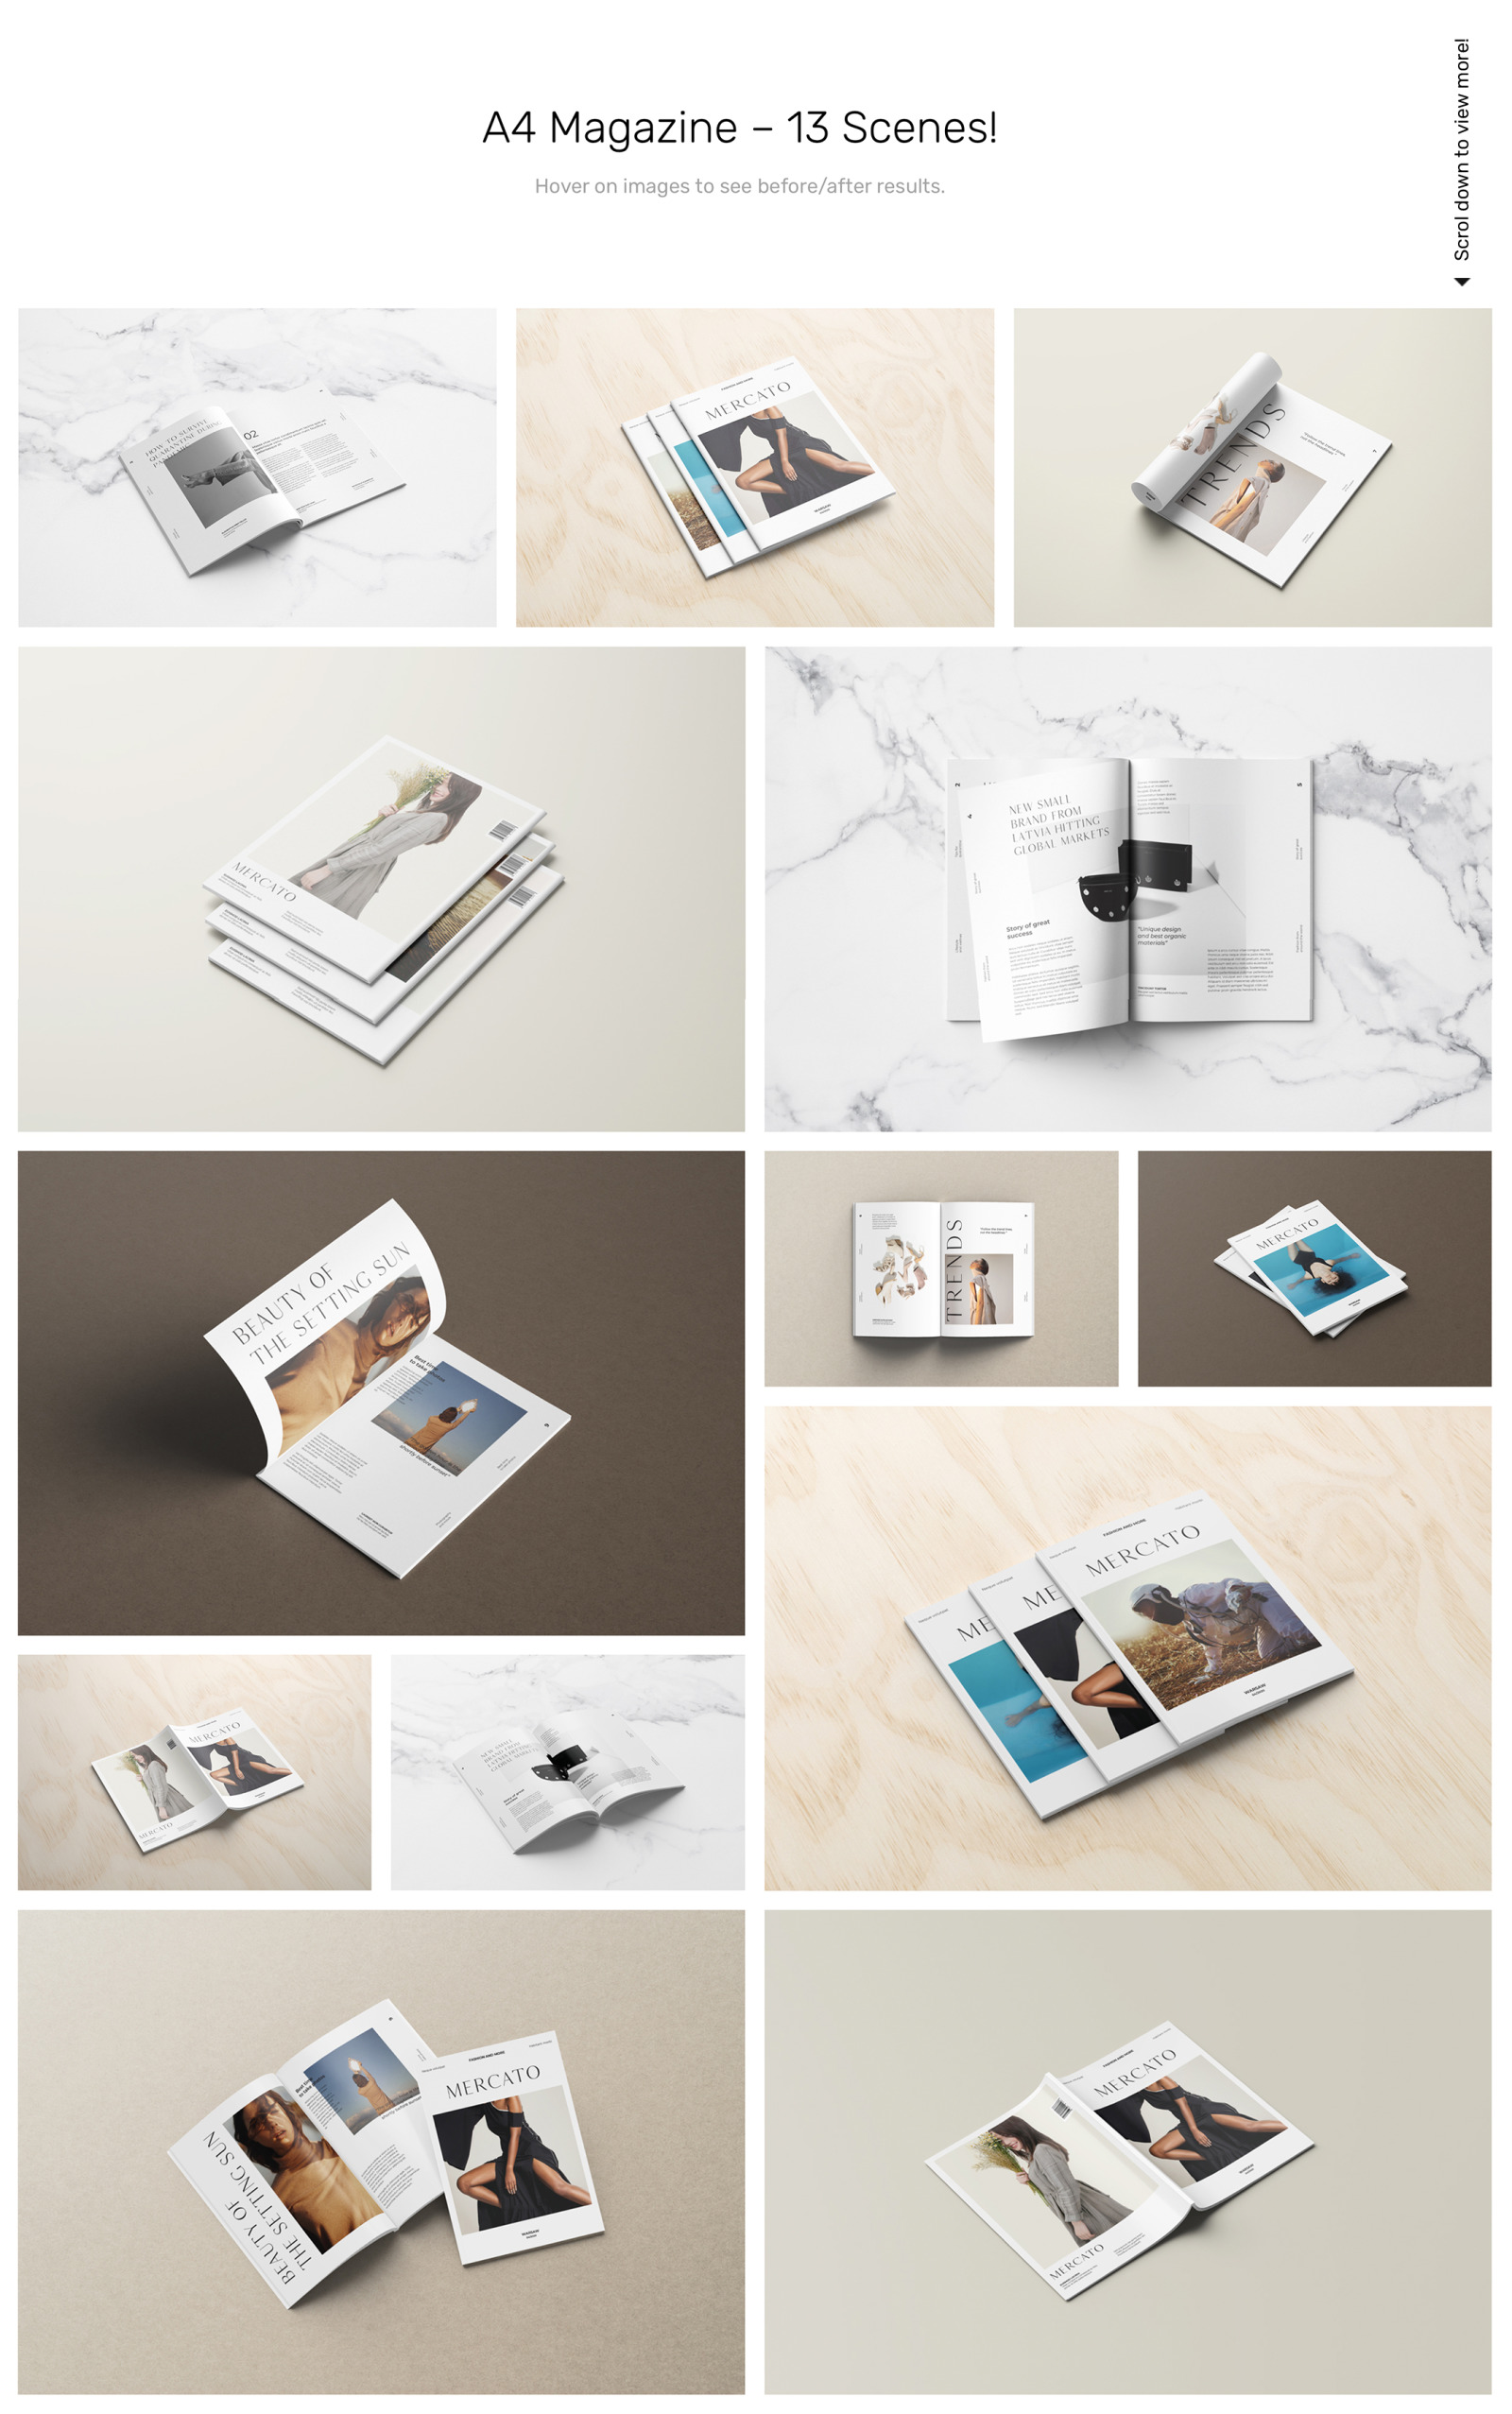 Download Magazine Mockups In Product Mockups On Yellow Images Creative Store PSD Mockup Templates